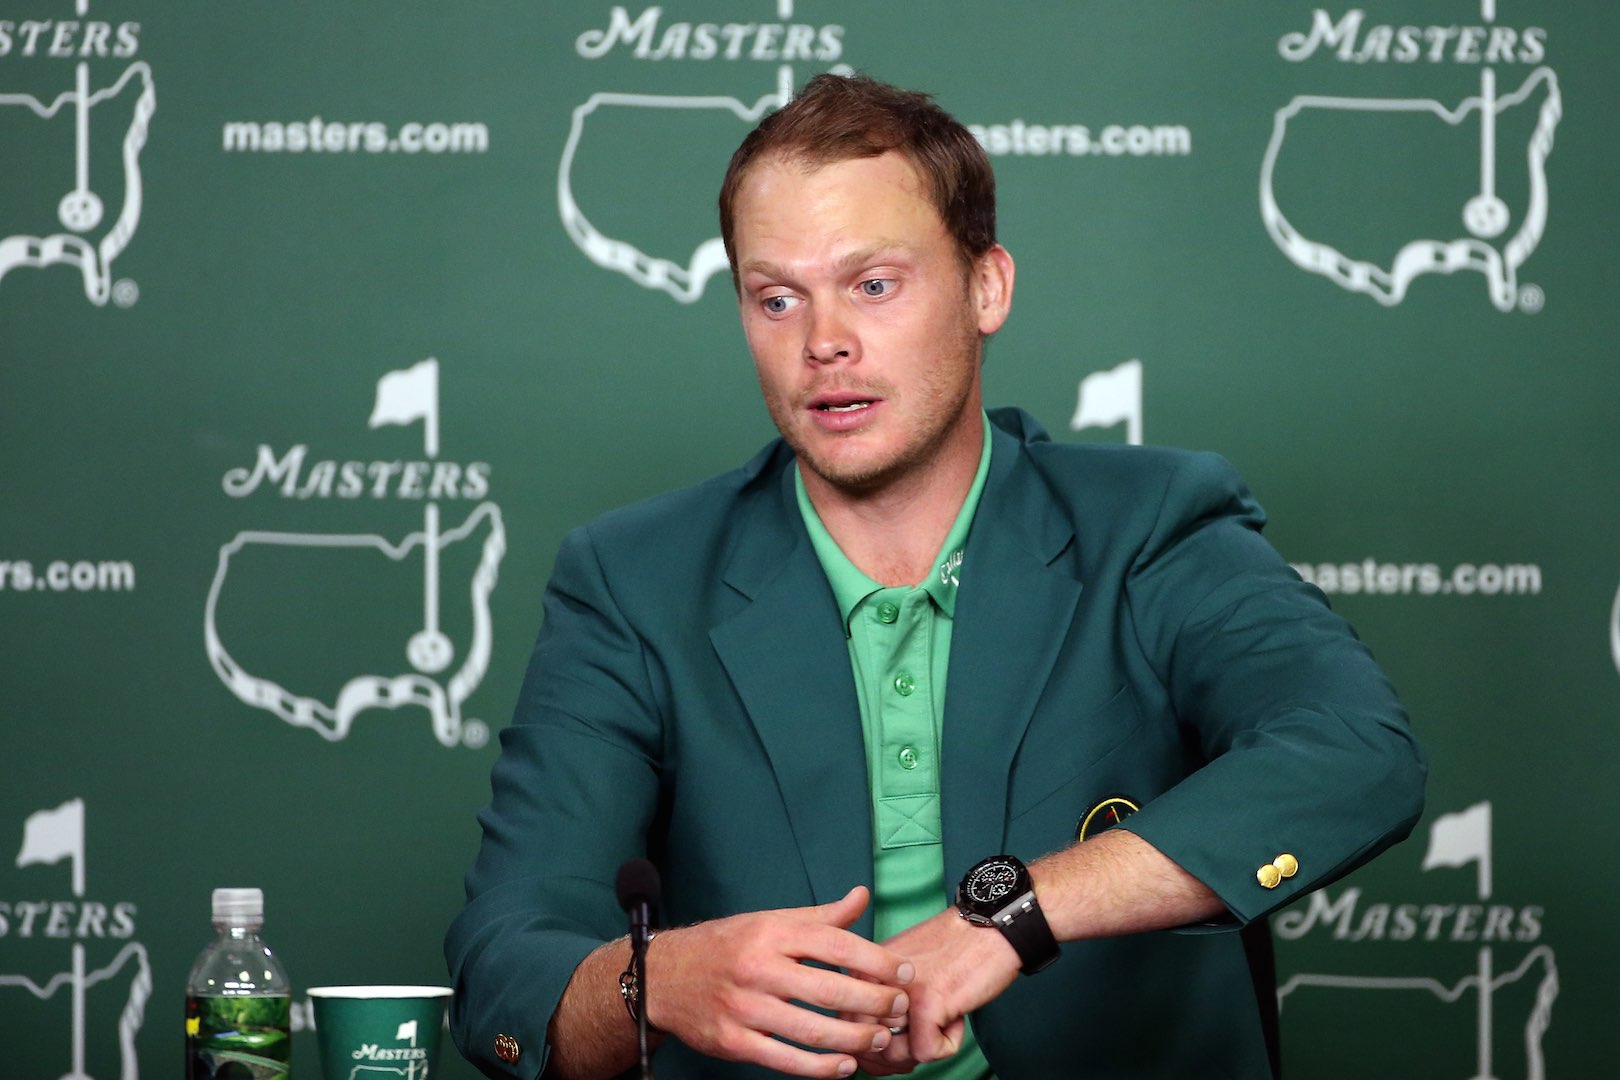 Get The Masters Champion's Watch